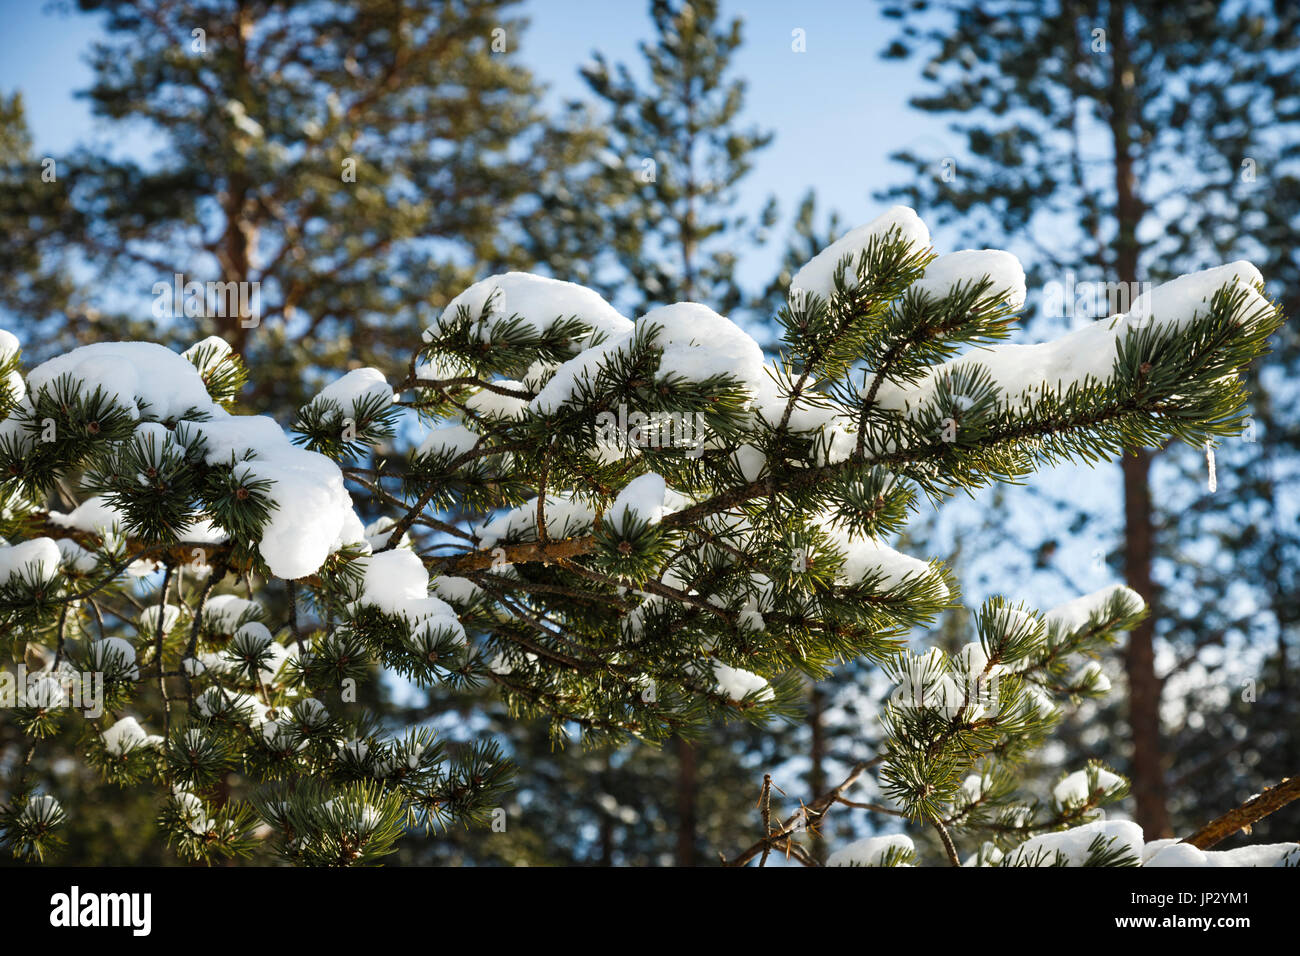 Snow Laden Branches On A Norwegian Spruce Tree - Stock Image